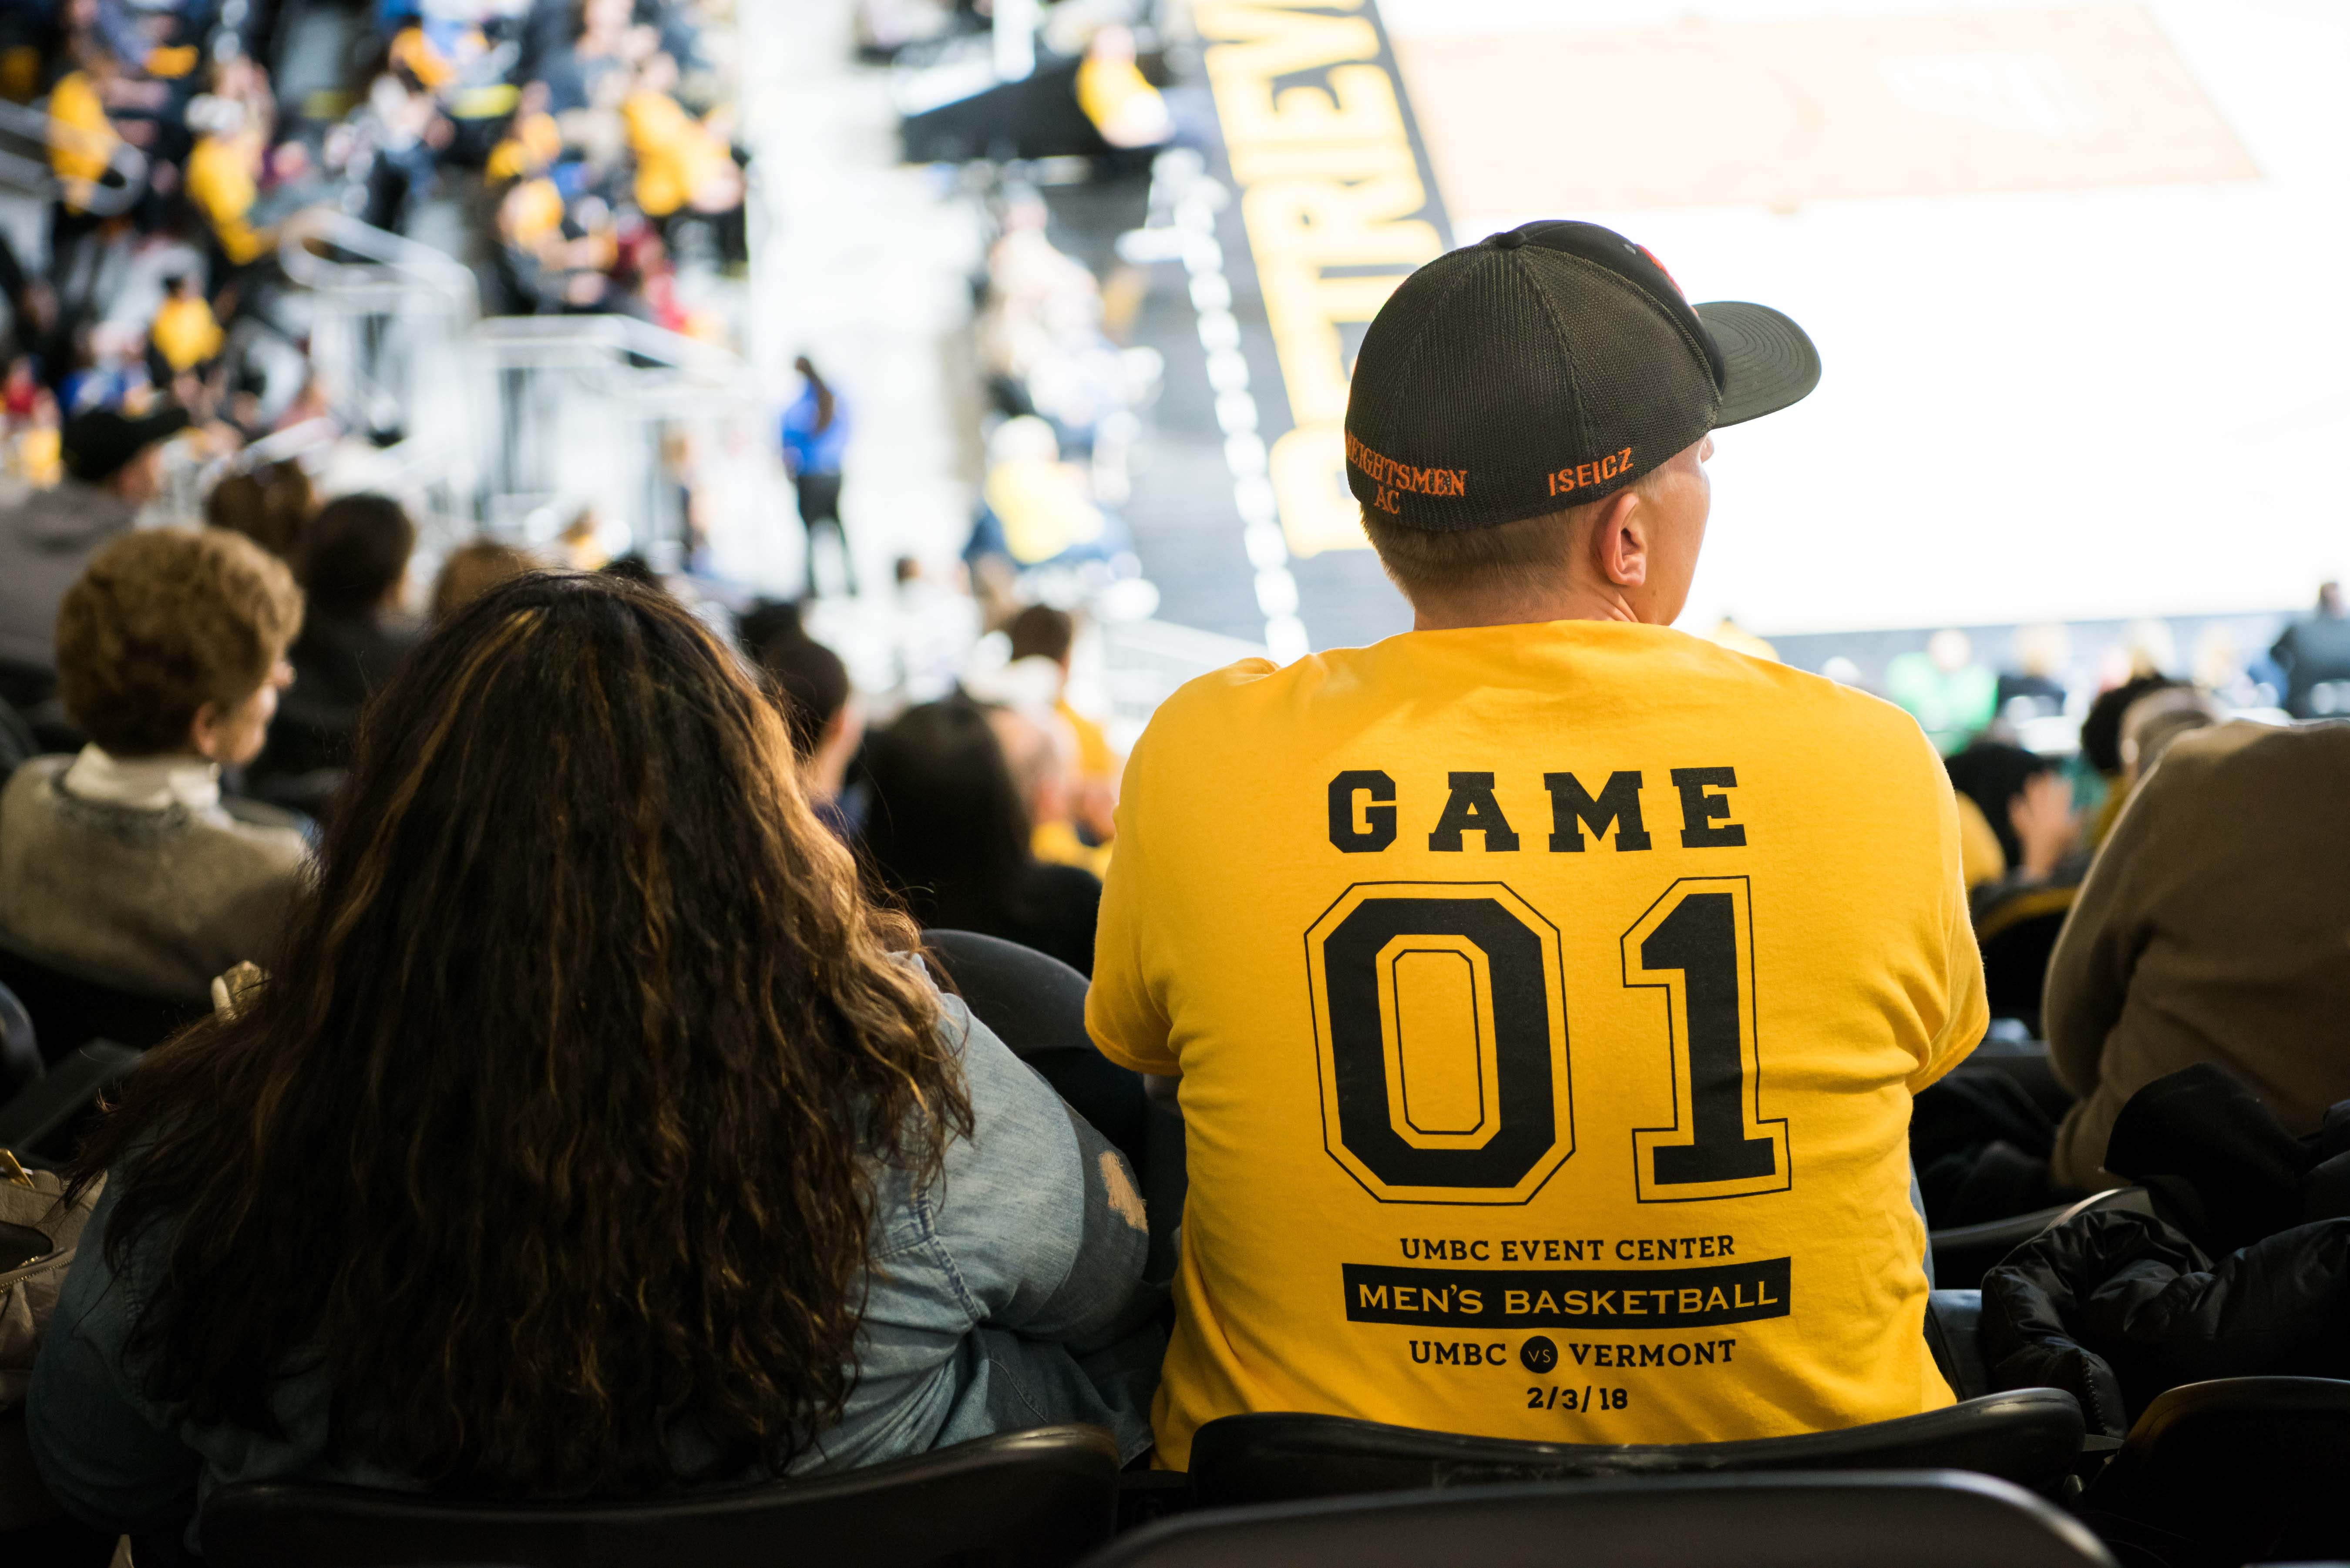 attendee with Game 01 UMBC event center shirt on